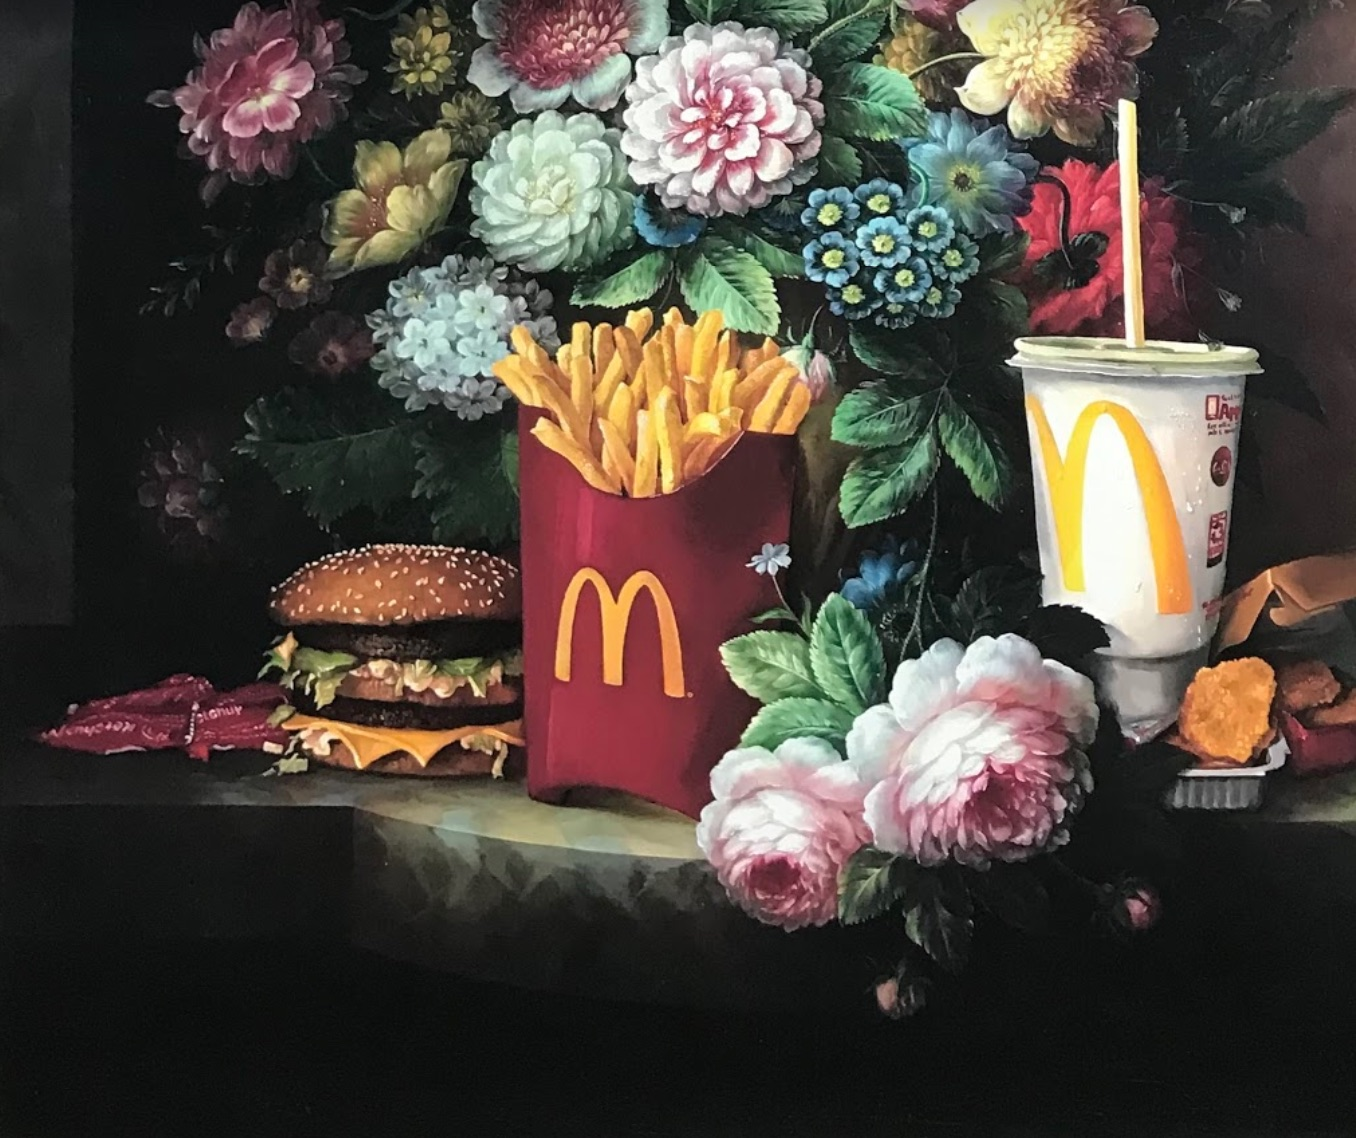 Calorie Composition I with Extra Pickles, Sweet and Sour Sauce by Dave Pollot (Detail 2)